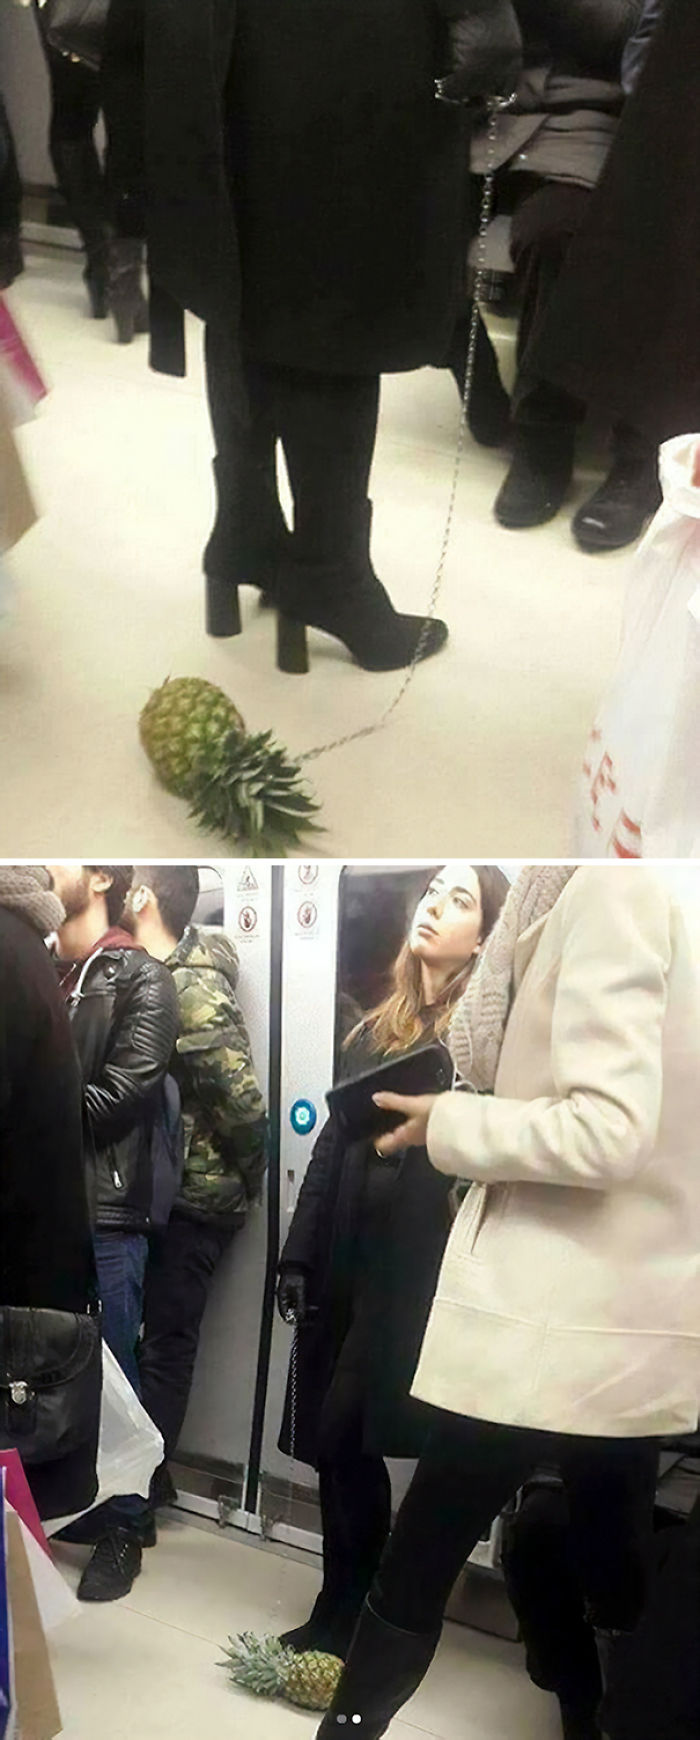 Emotional Support Pineapple?